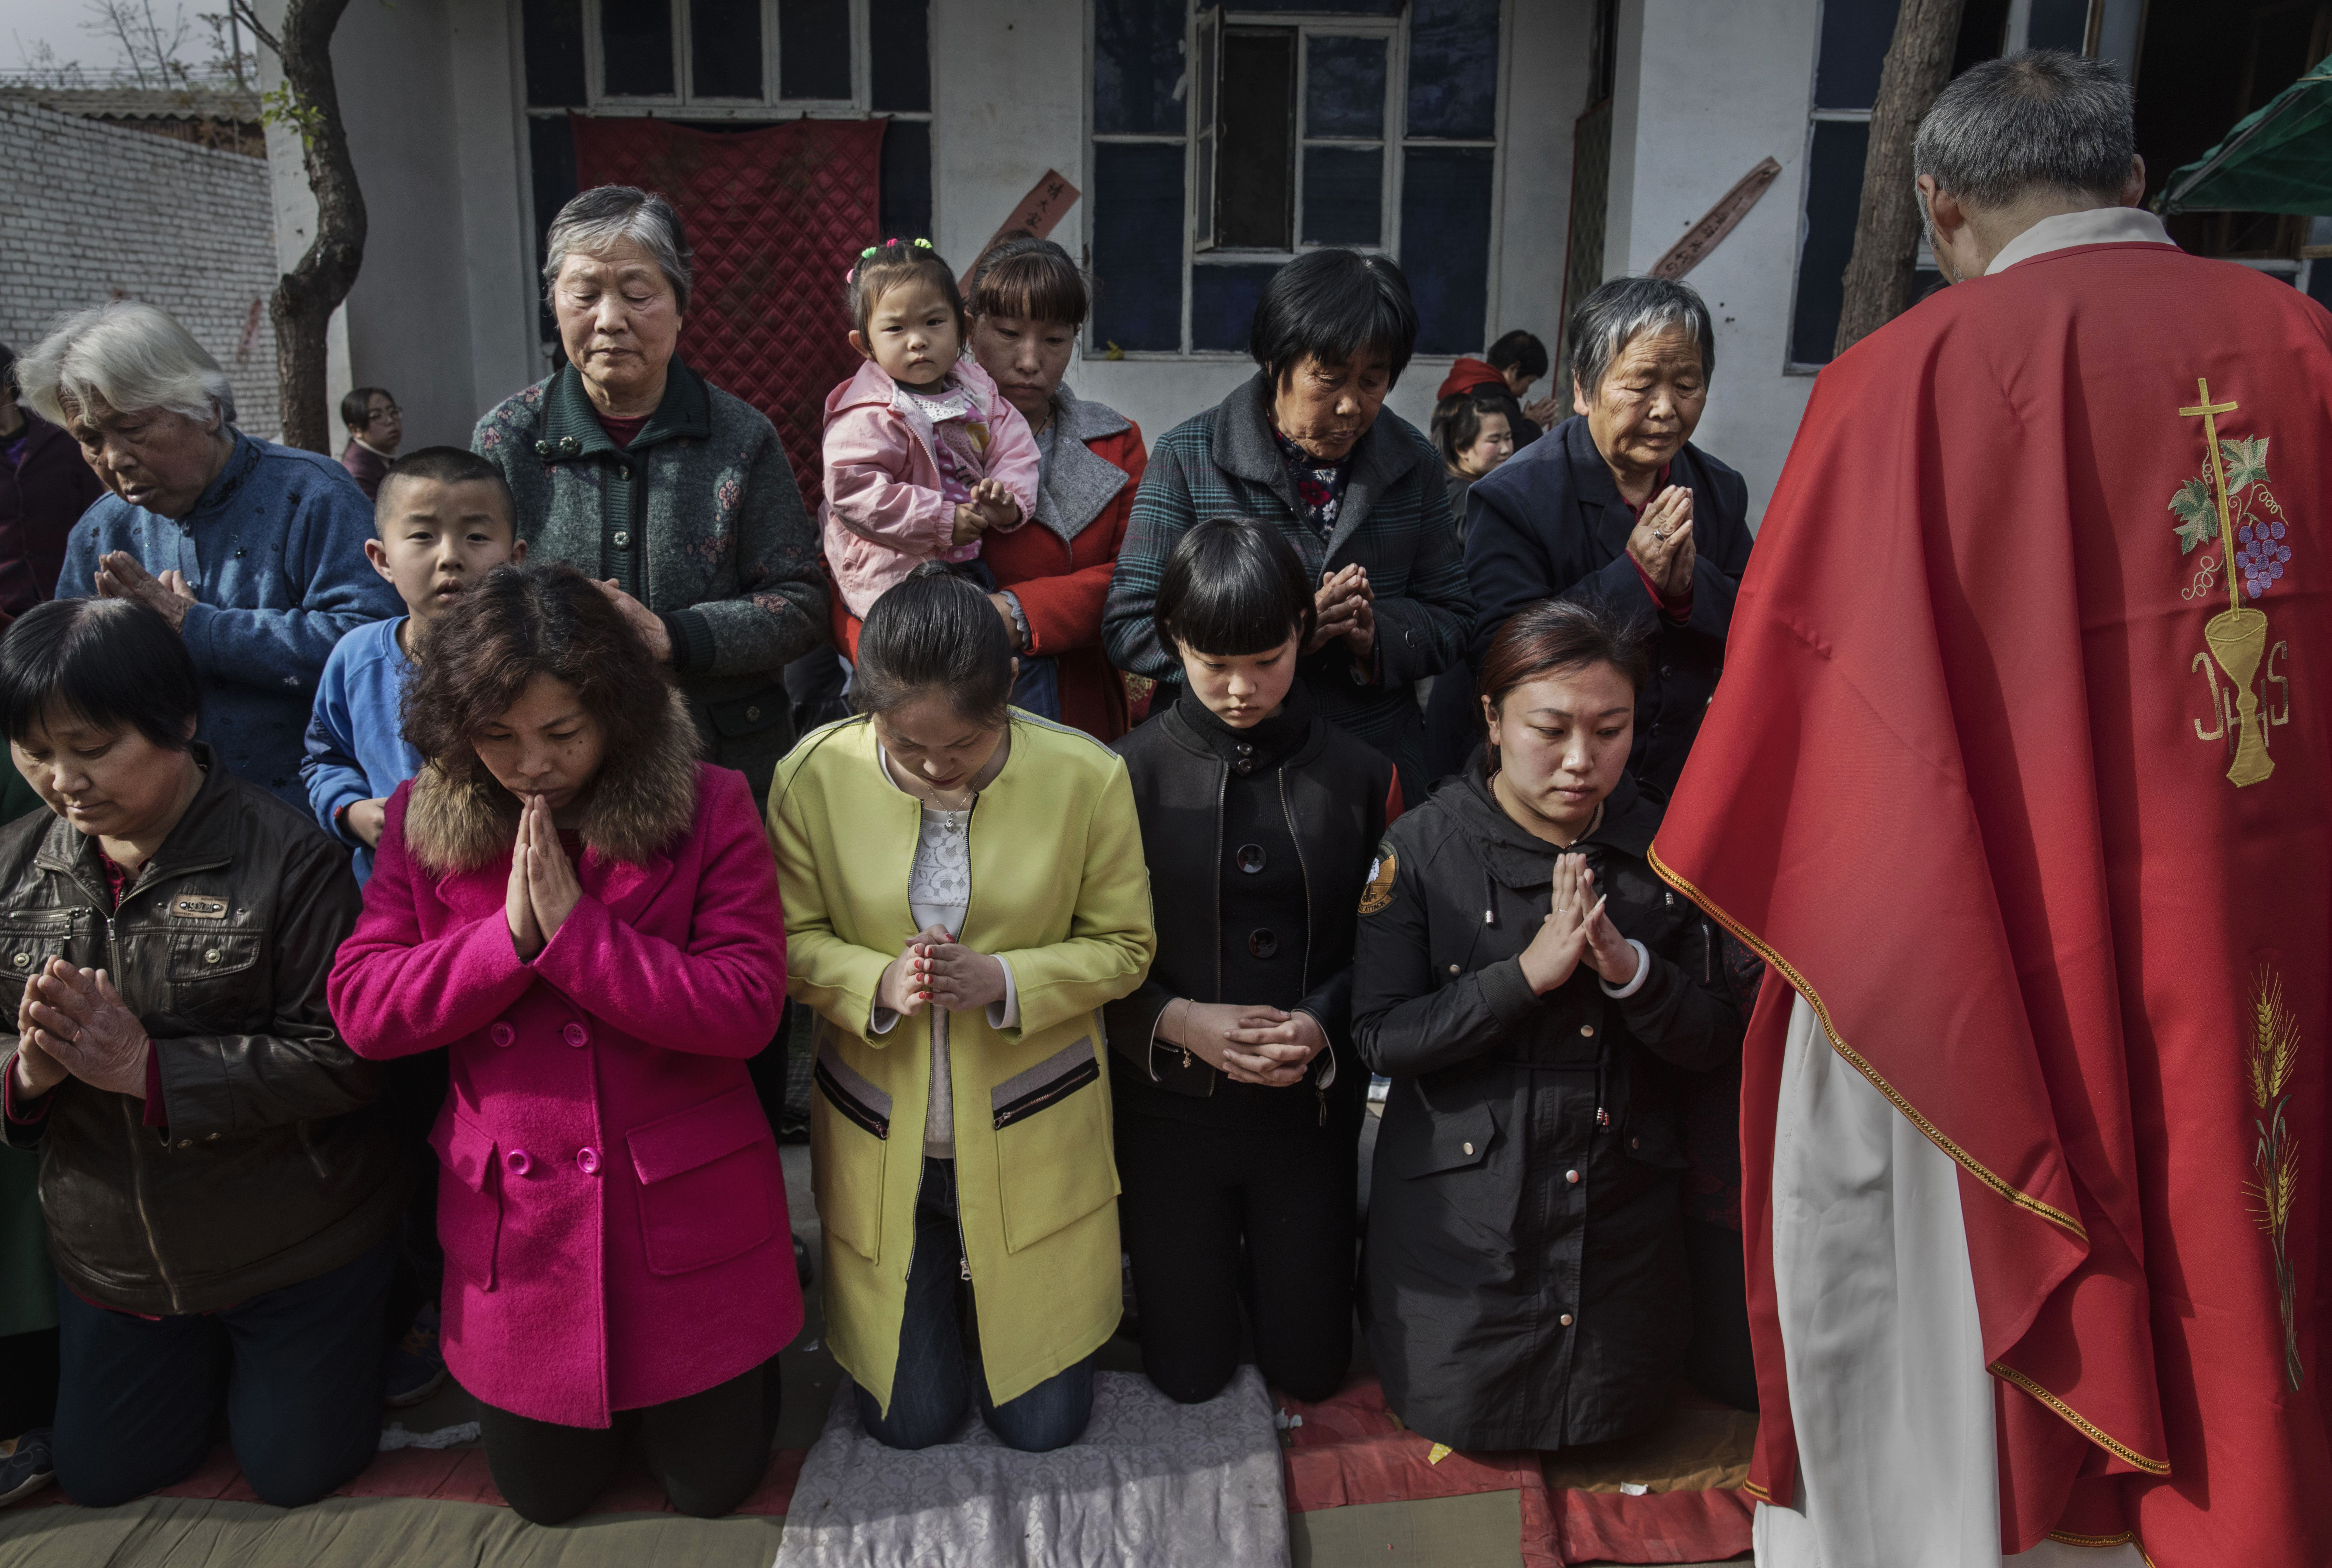 Chinese Catholic worshippers wait to take communion at the Palm Sunday Mass during the Easter Holy Week at an